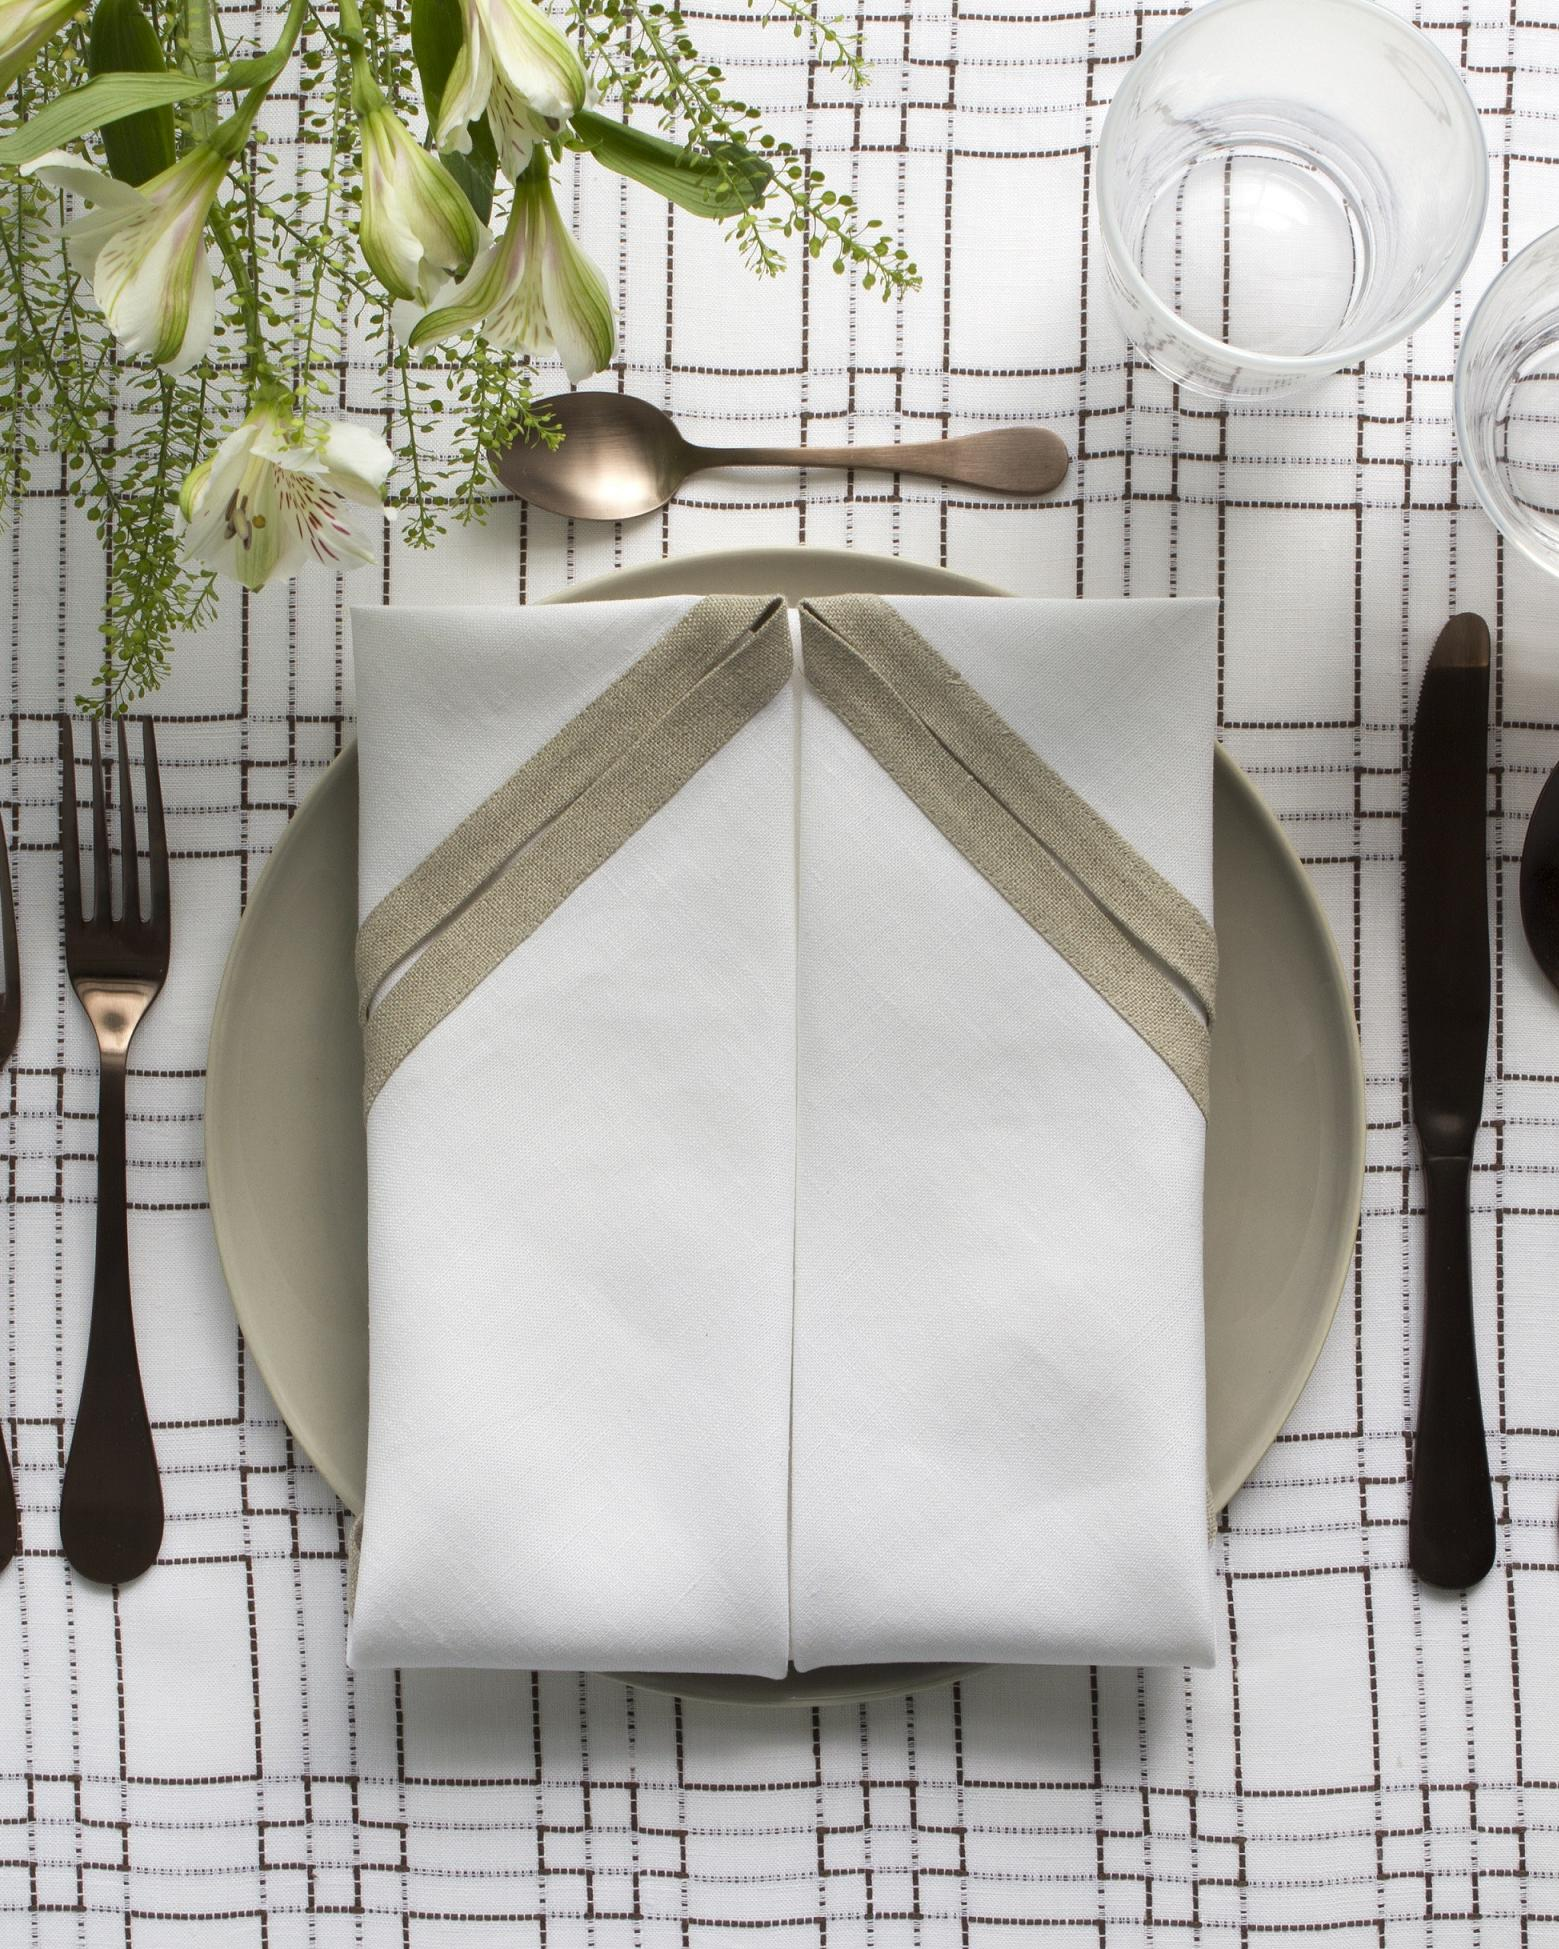 Step 5 - Completed Napkin Fold